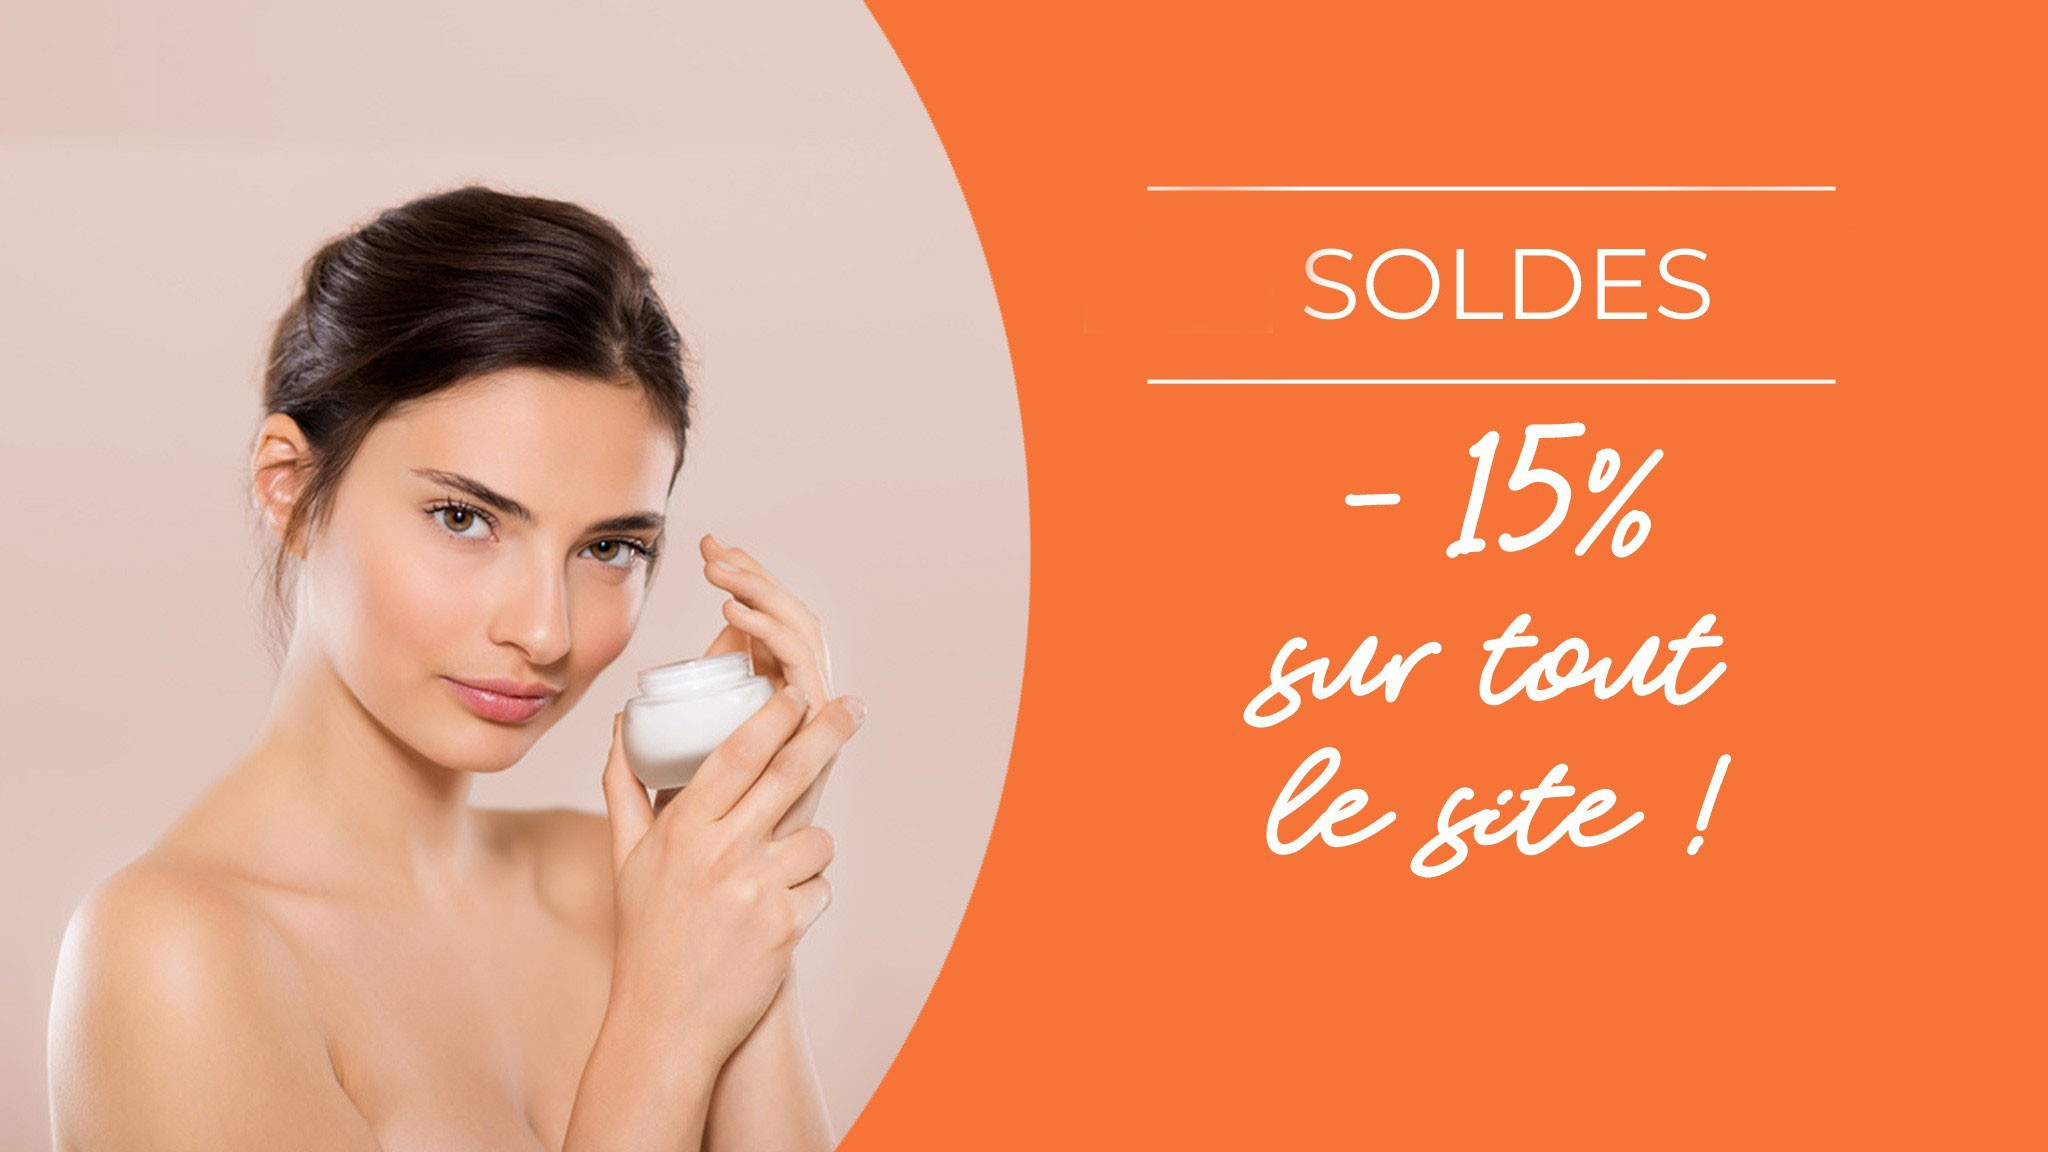 soldes caracol skincare